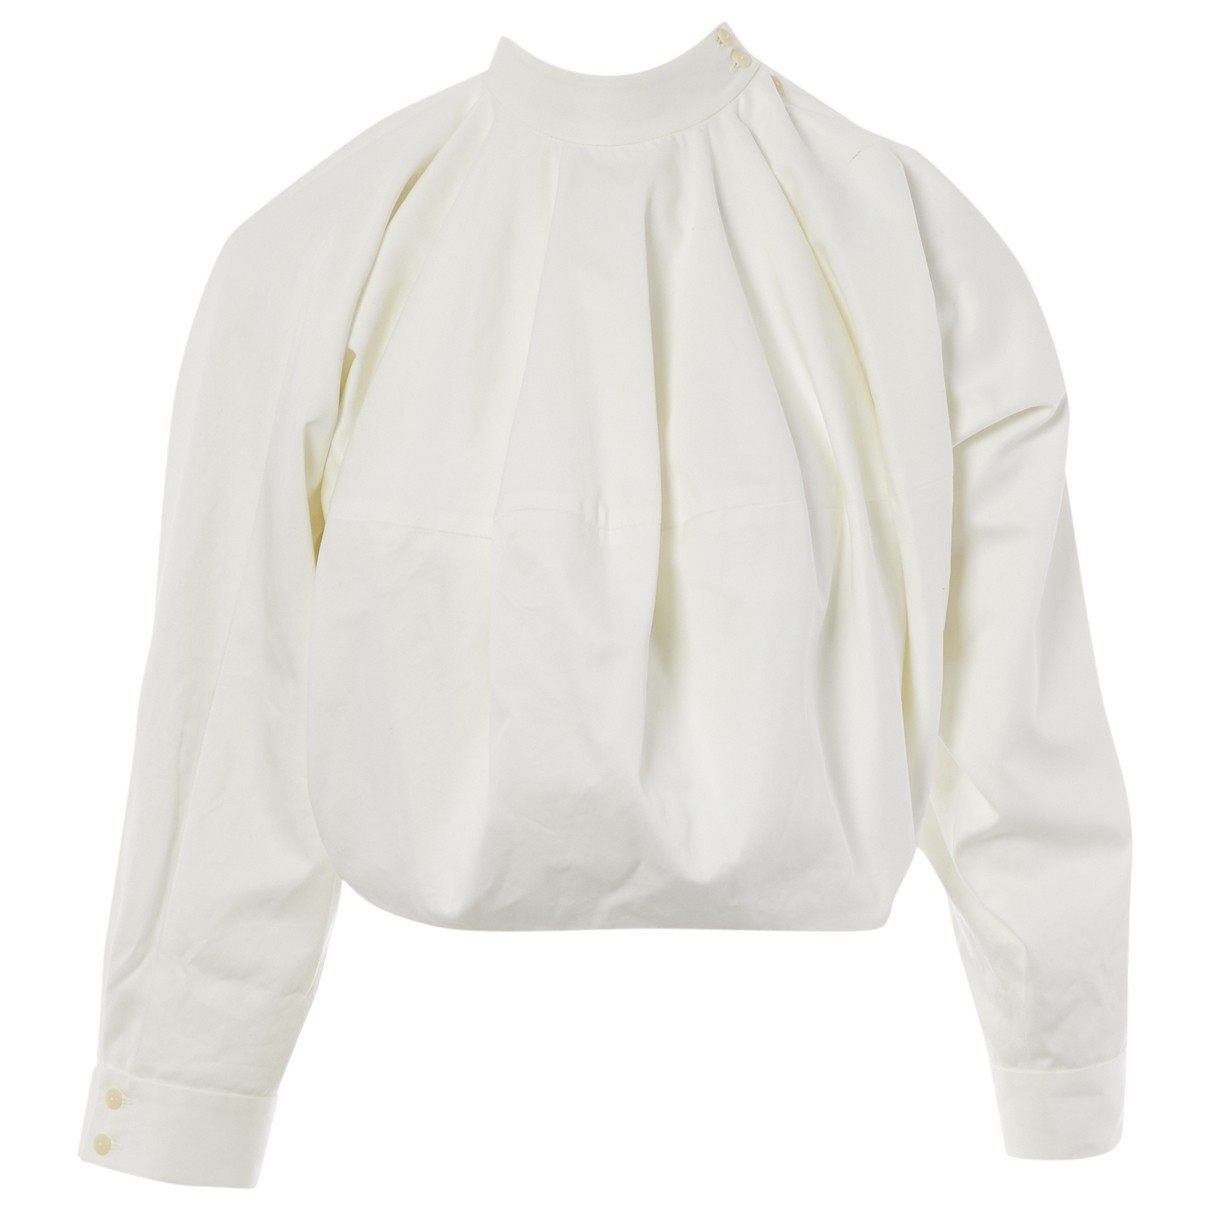 J.w. Anderson \N White Cotton  top for Women 8 UK